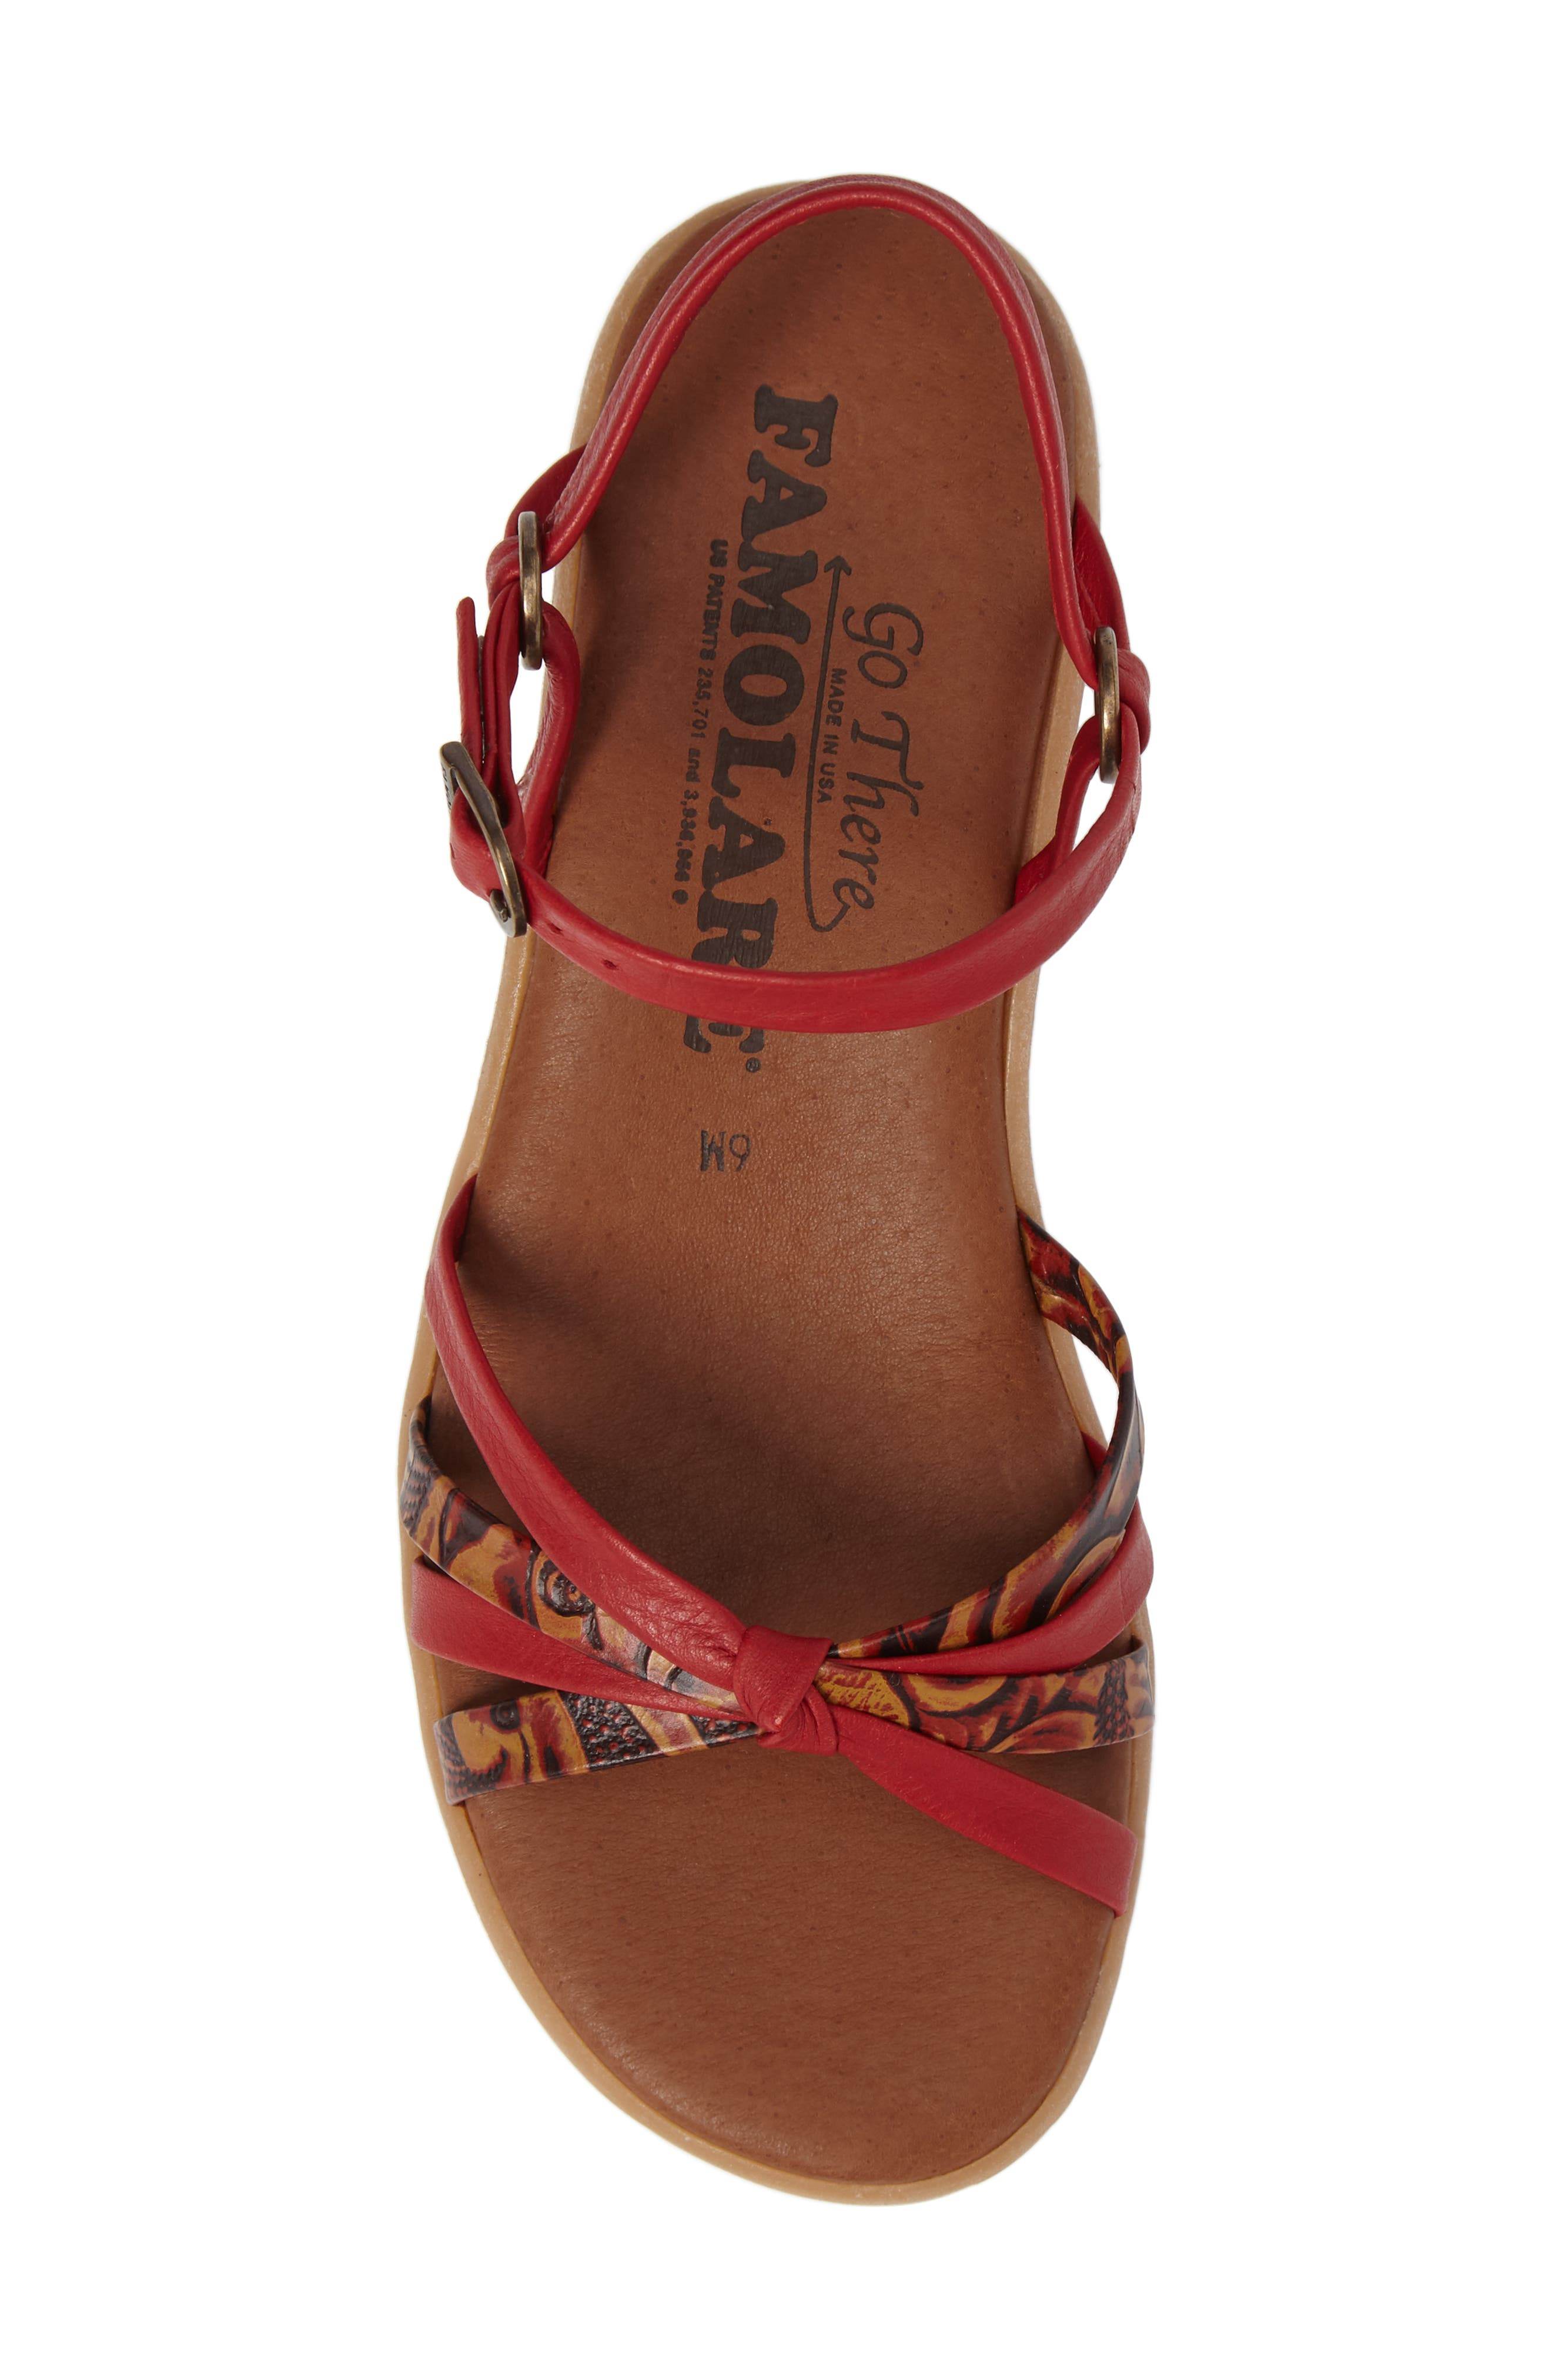 Strap Music Knotted Sandal,                             Alternate thumbnail 5, color,                             MULTI CORAL LEATHER